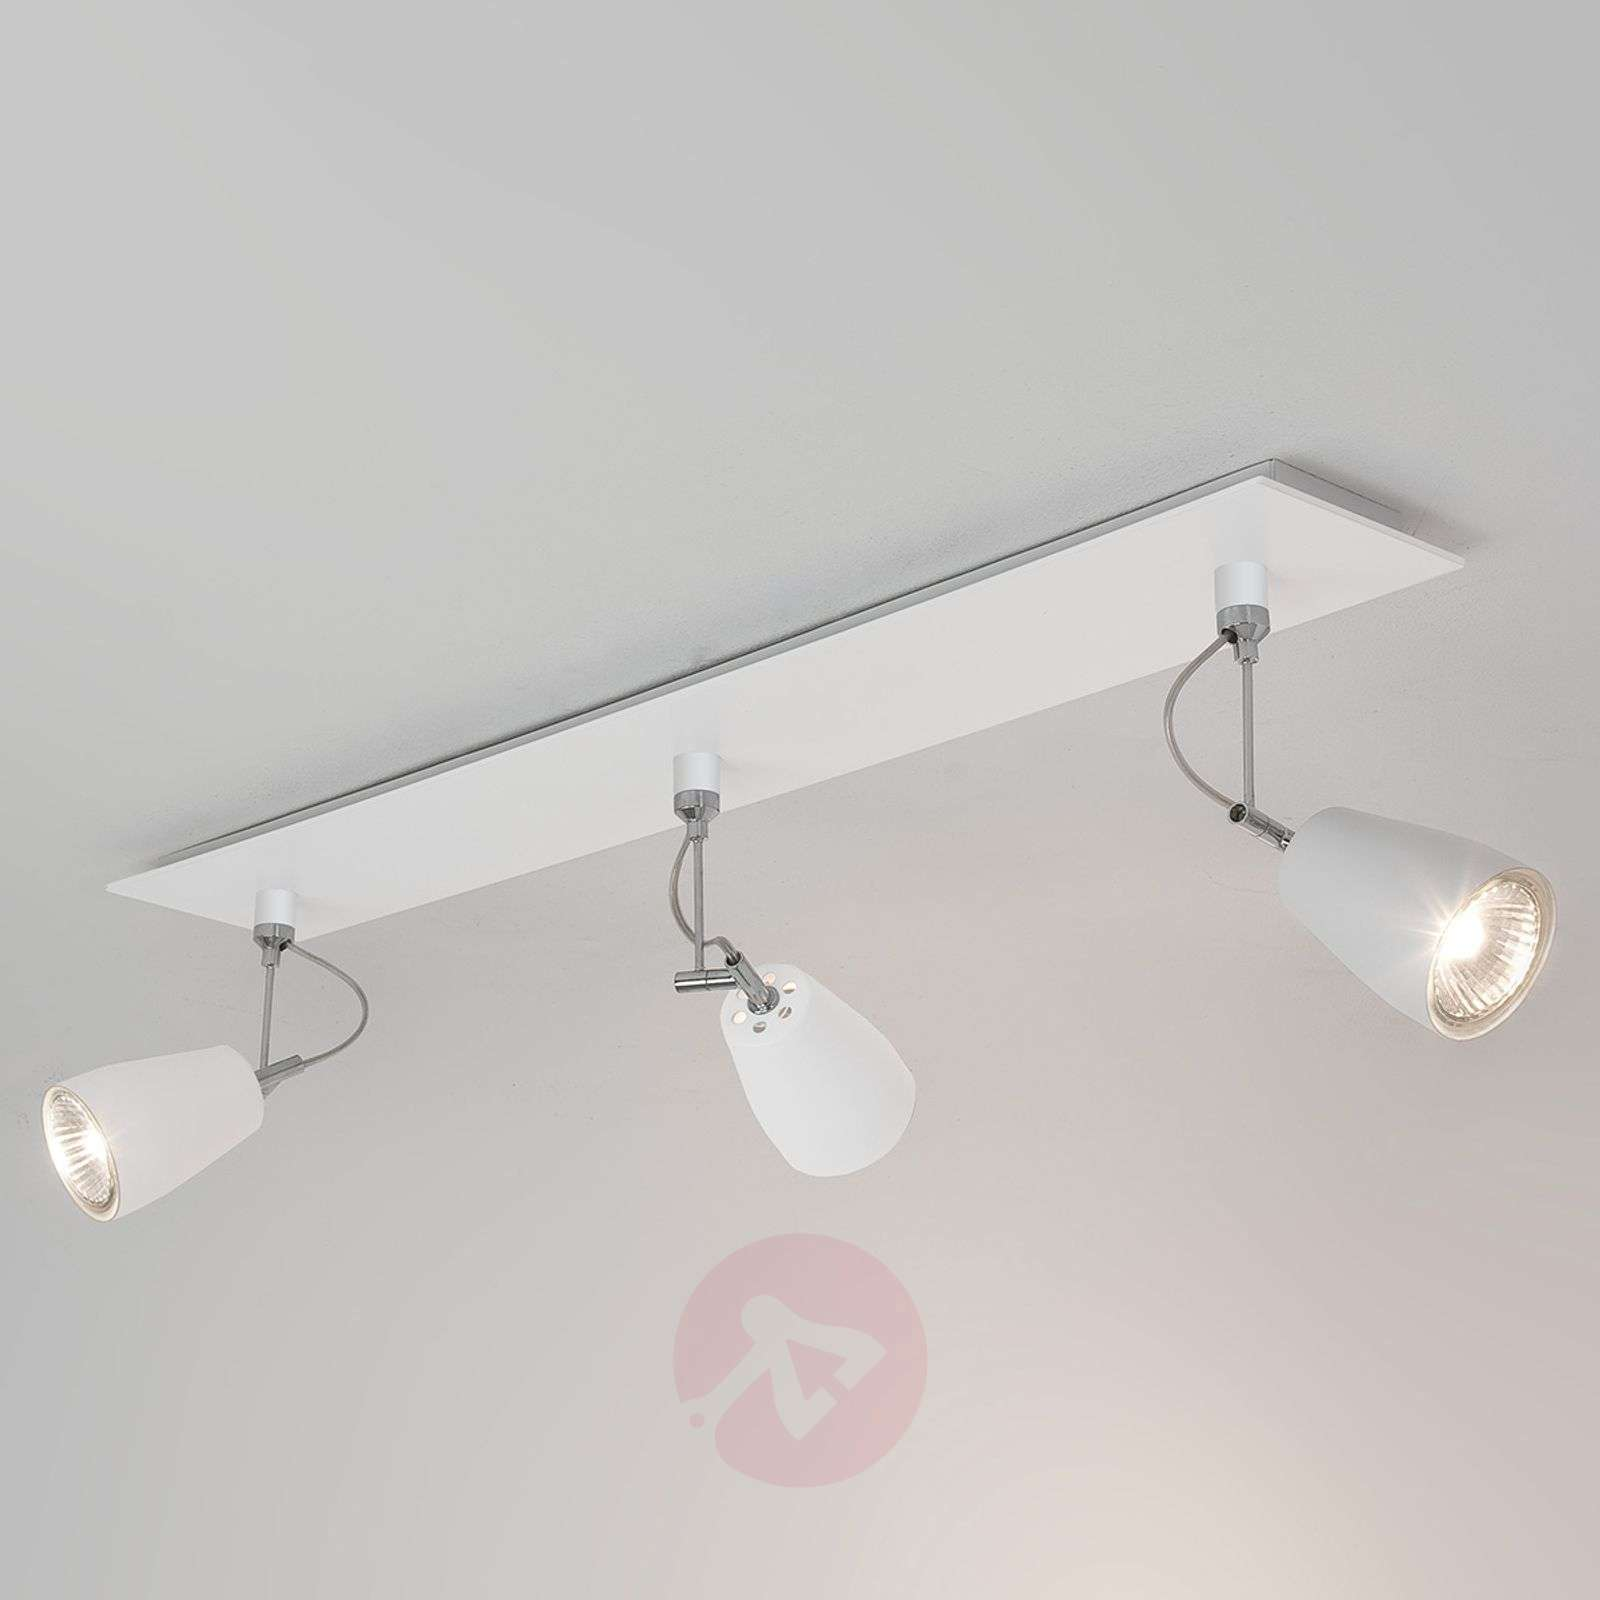 Polar Ceiling Spotlight Three Bulbs Decorative-1020264-02